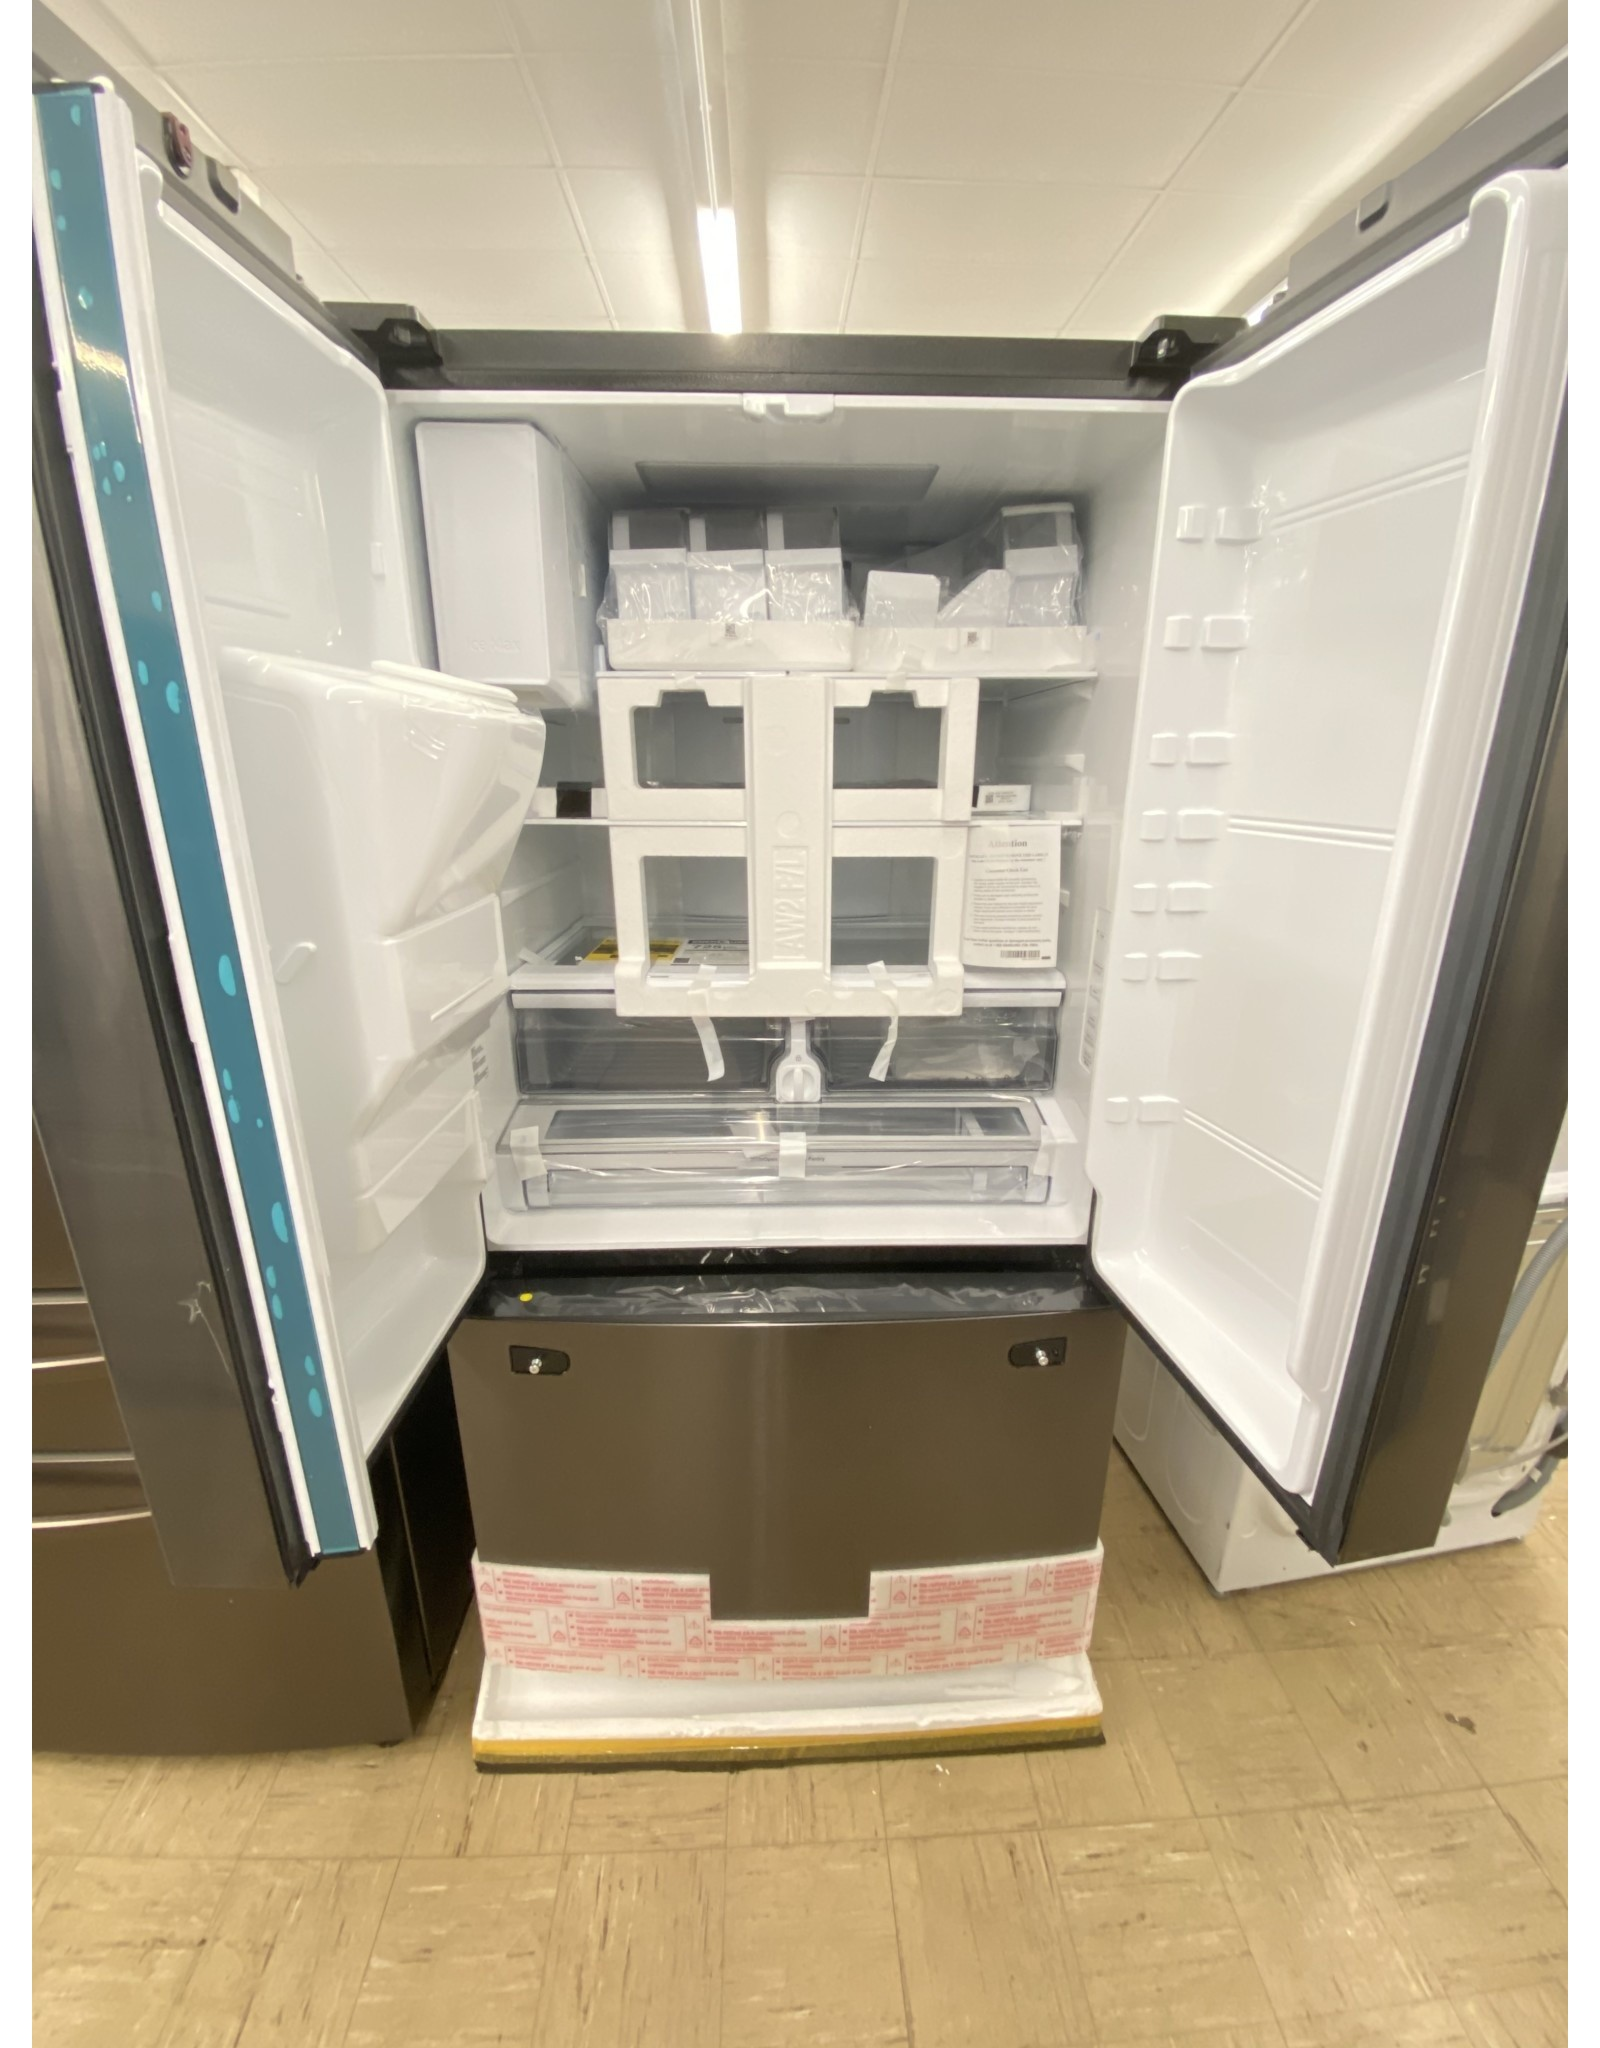 SAMSUNG RF28R6201SG 28.07 cu. ft. 3-Door French Door Refrigerator in Black Stainless Steel with CoolSelect Pantry